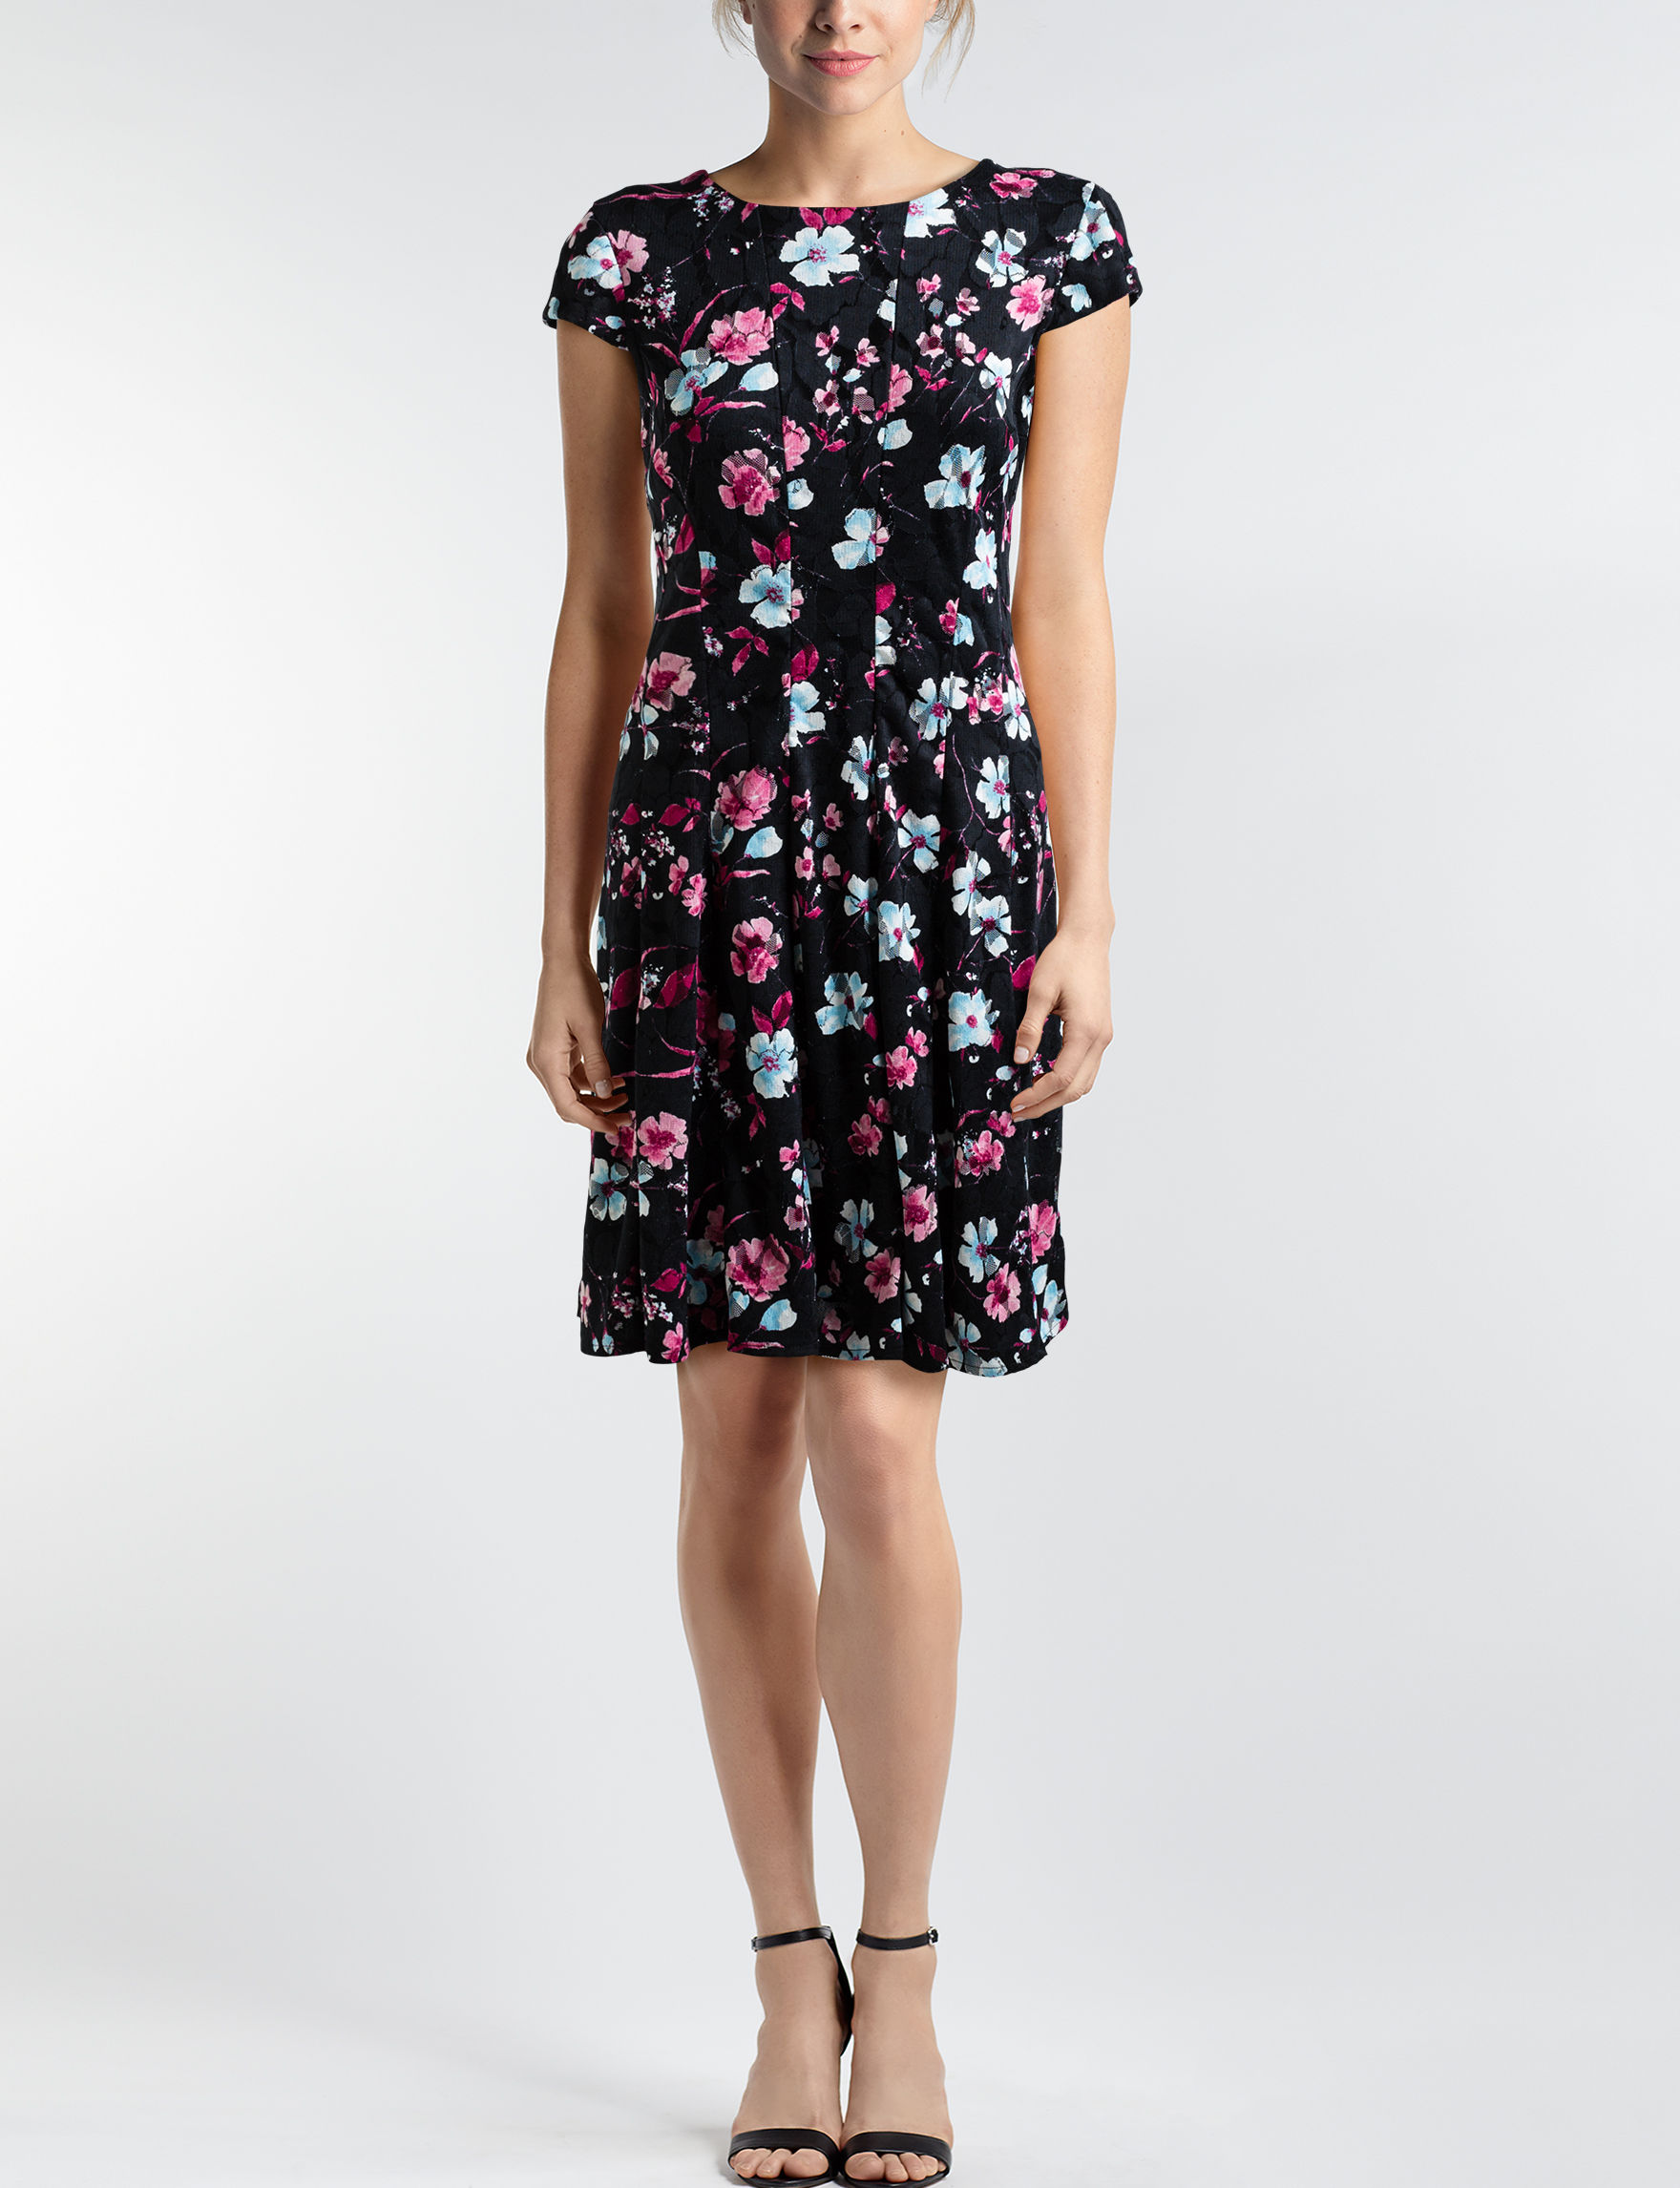 Sandra Darren Black Floral Everyday & Casual A-line Dresses Fit & Flare Dresses